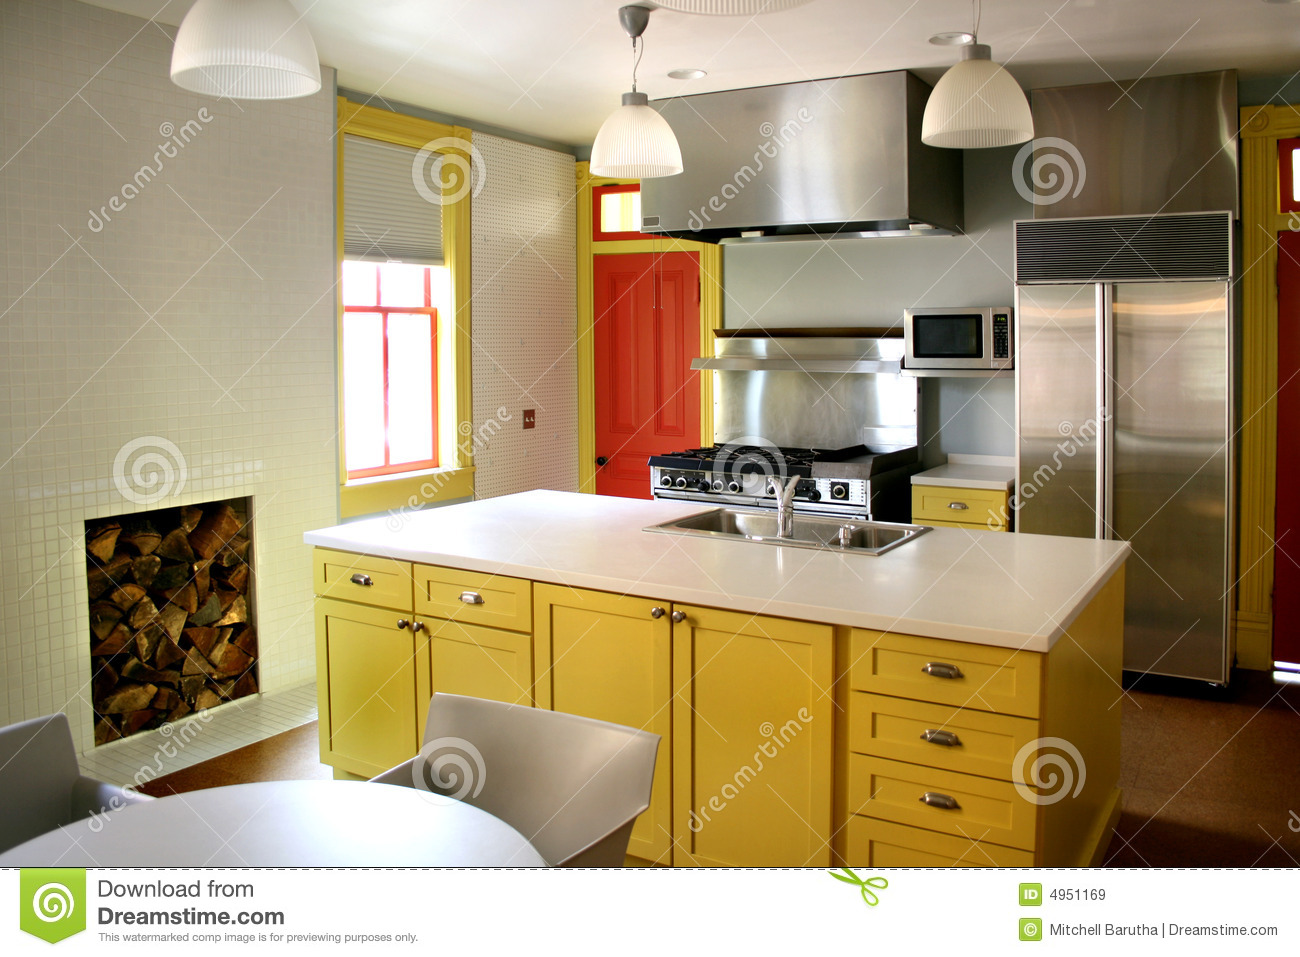 Light Yellow Kitchen Kitchen Yellow Wood Cabinets Stainless Stove Stock Image